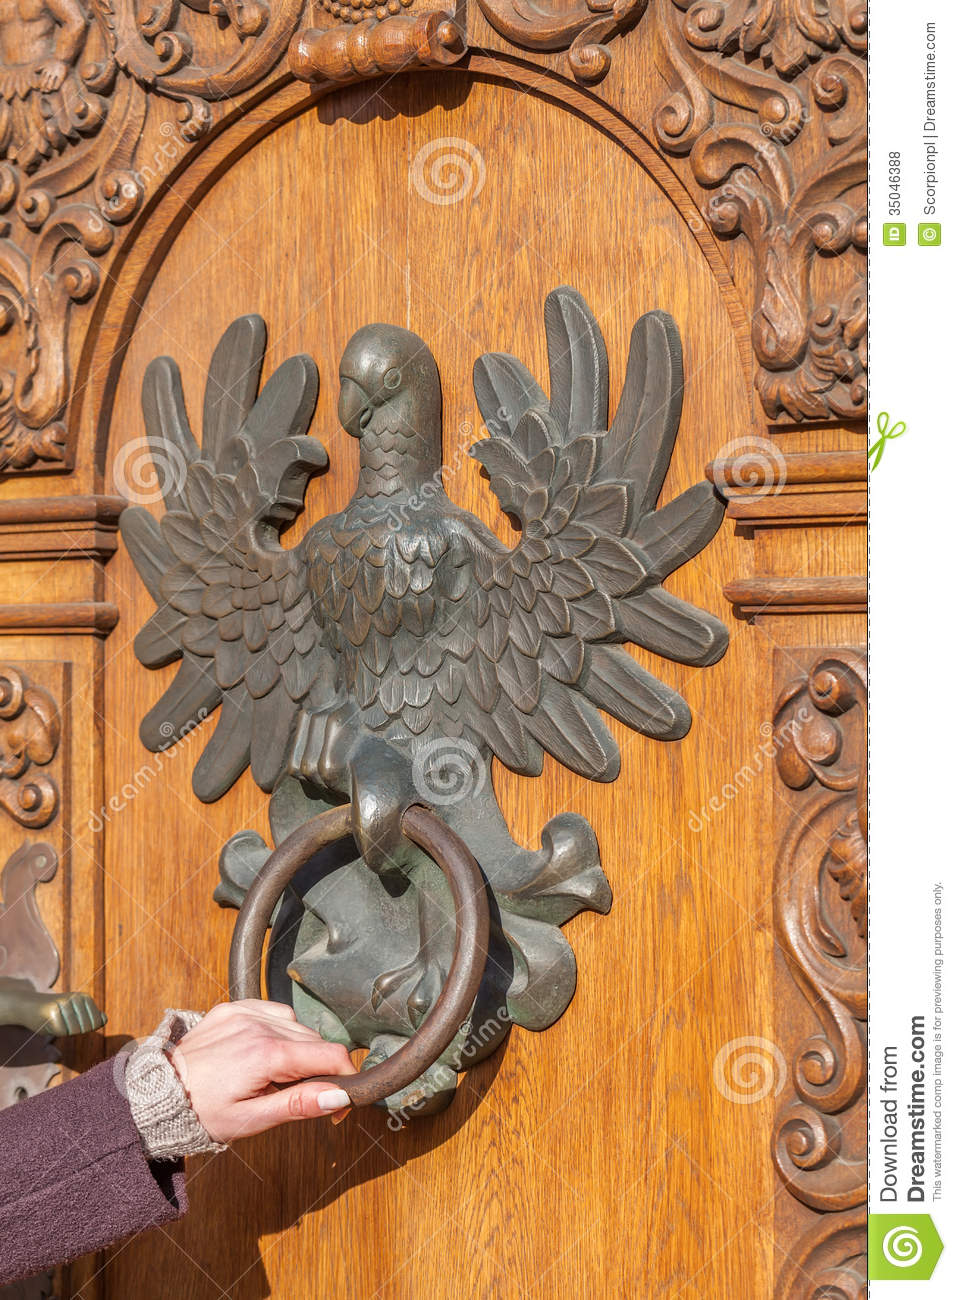 Front Door Design Traditional Antique Door With Knocker In The Shape Of An Eagle Stock Photo - Image: 35046388